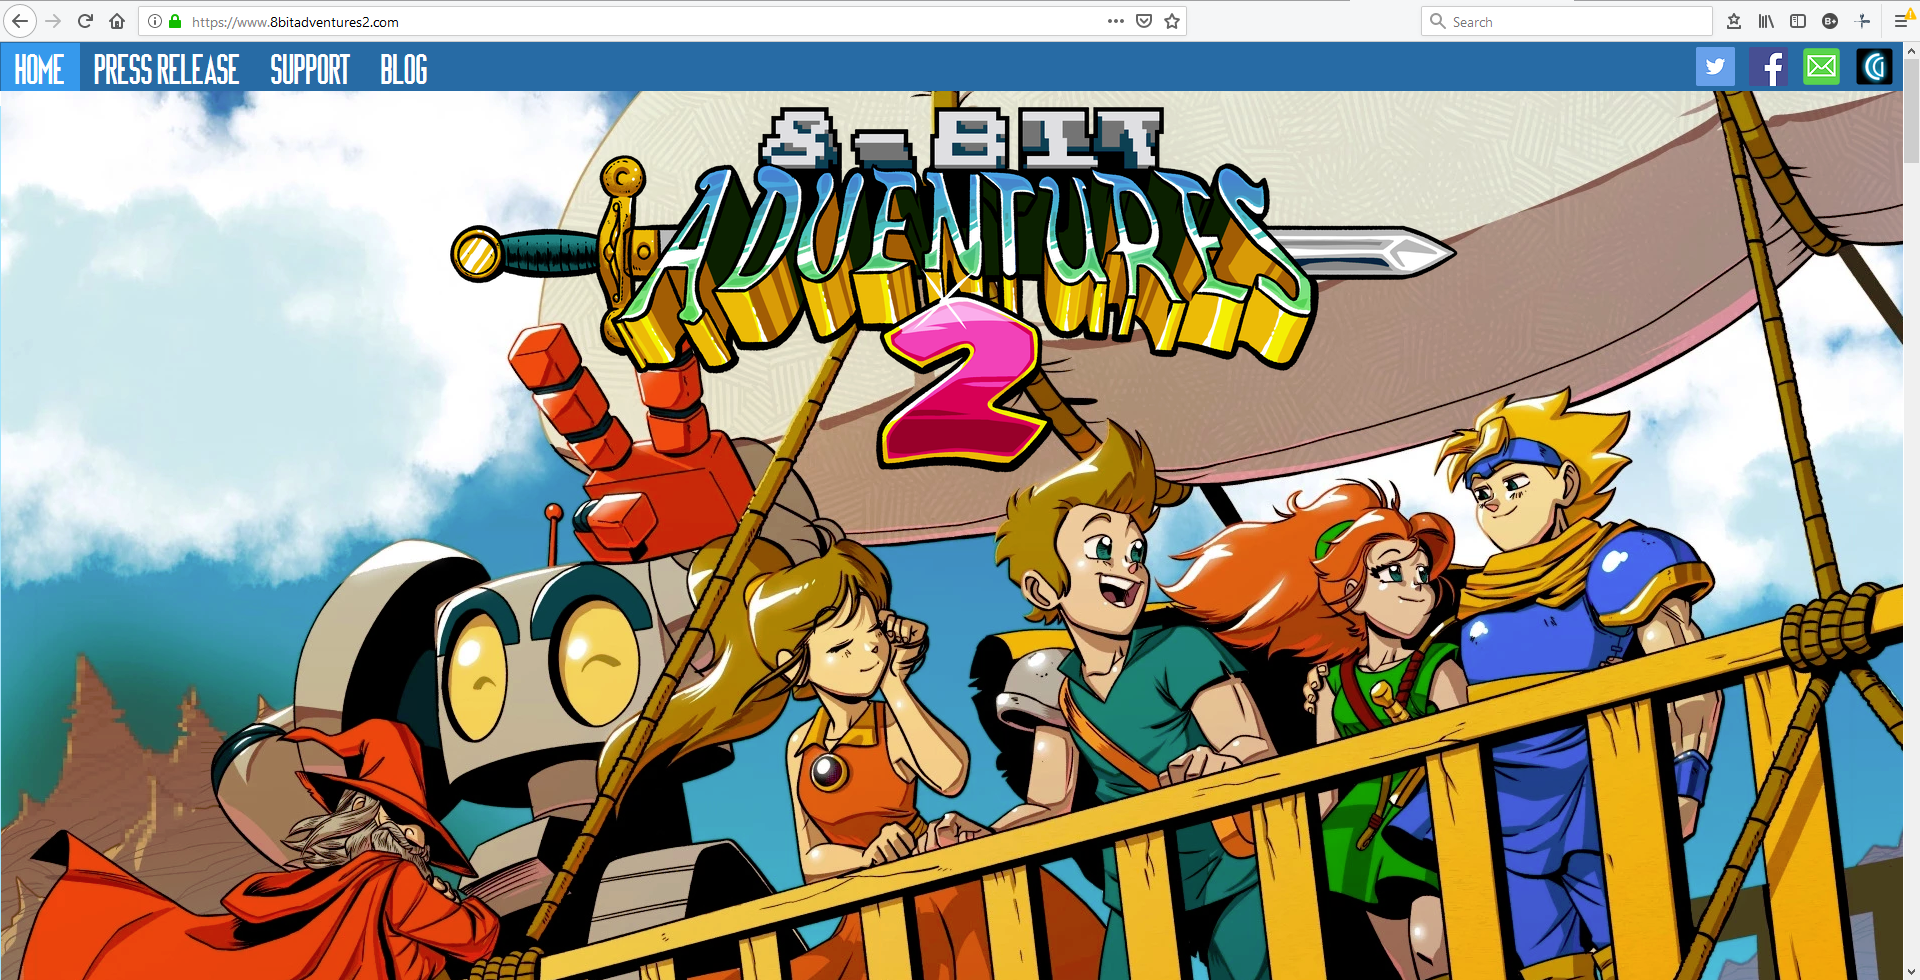 8 Bit Adventures 2 New Website